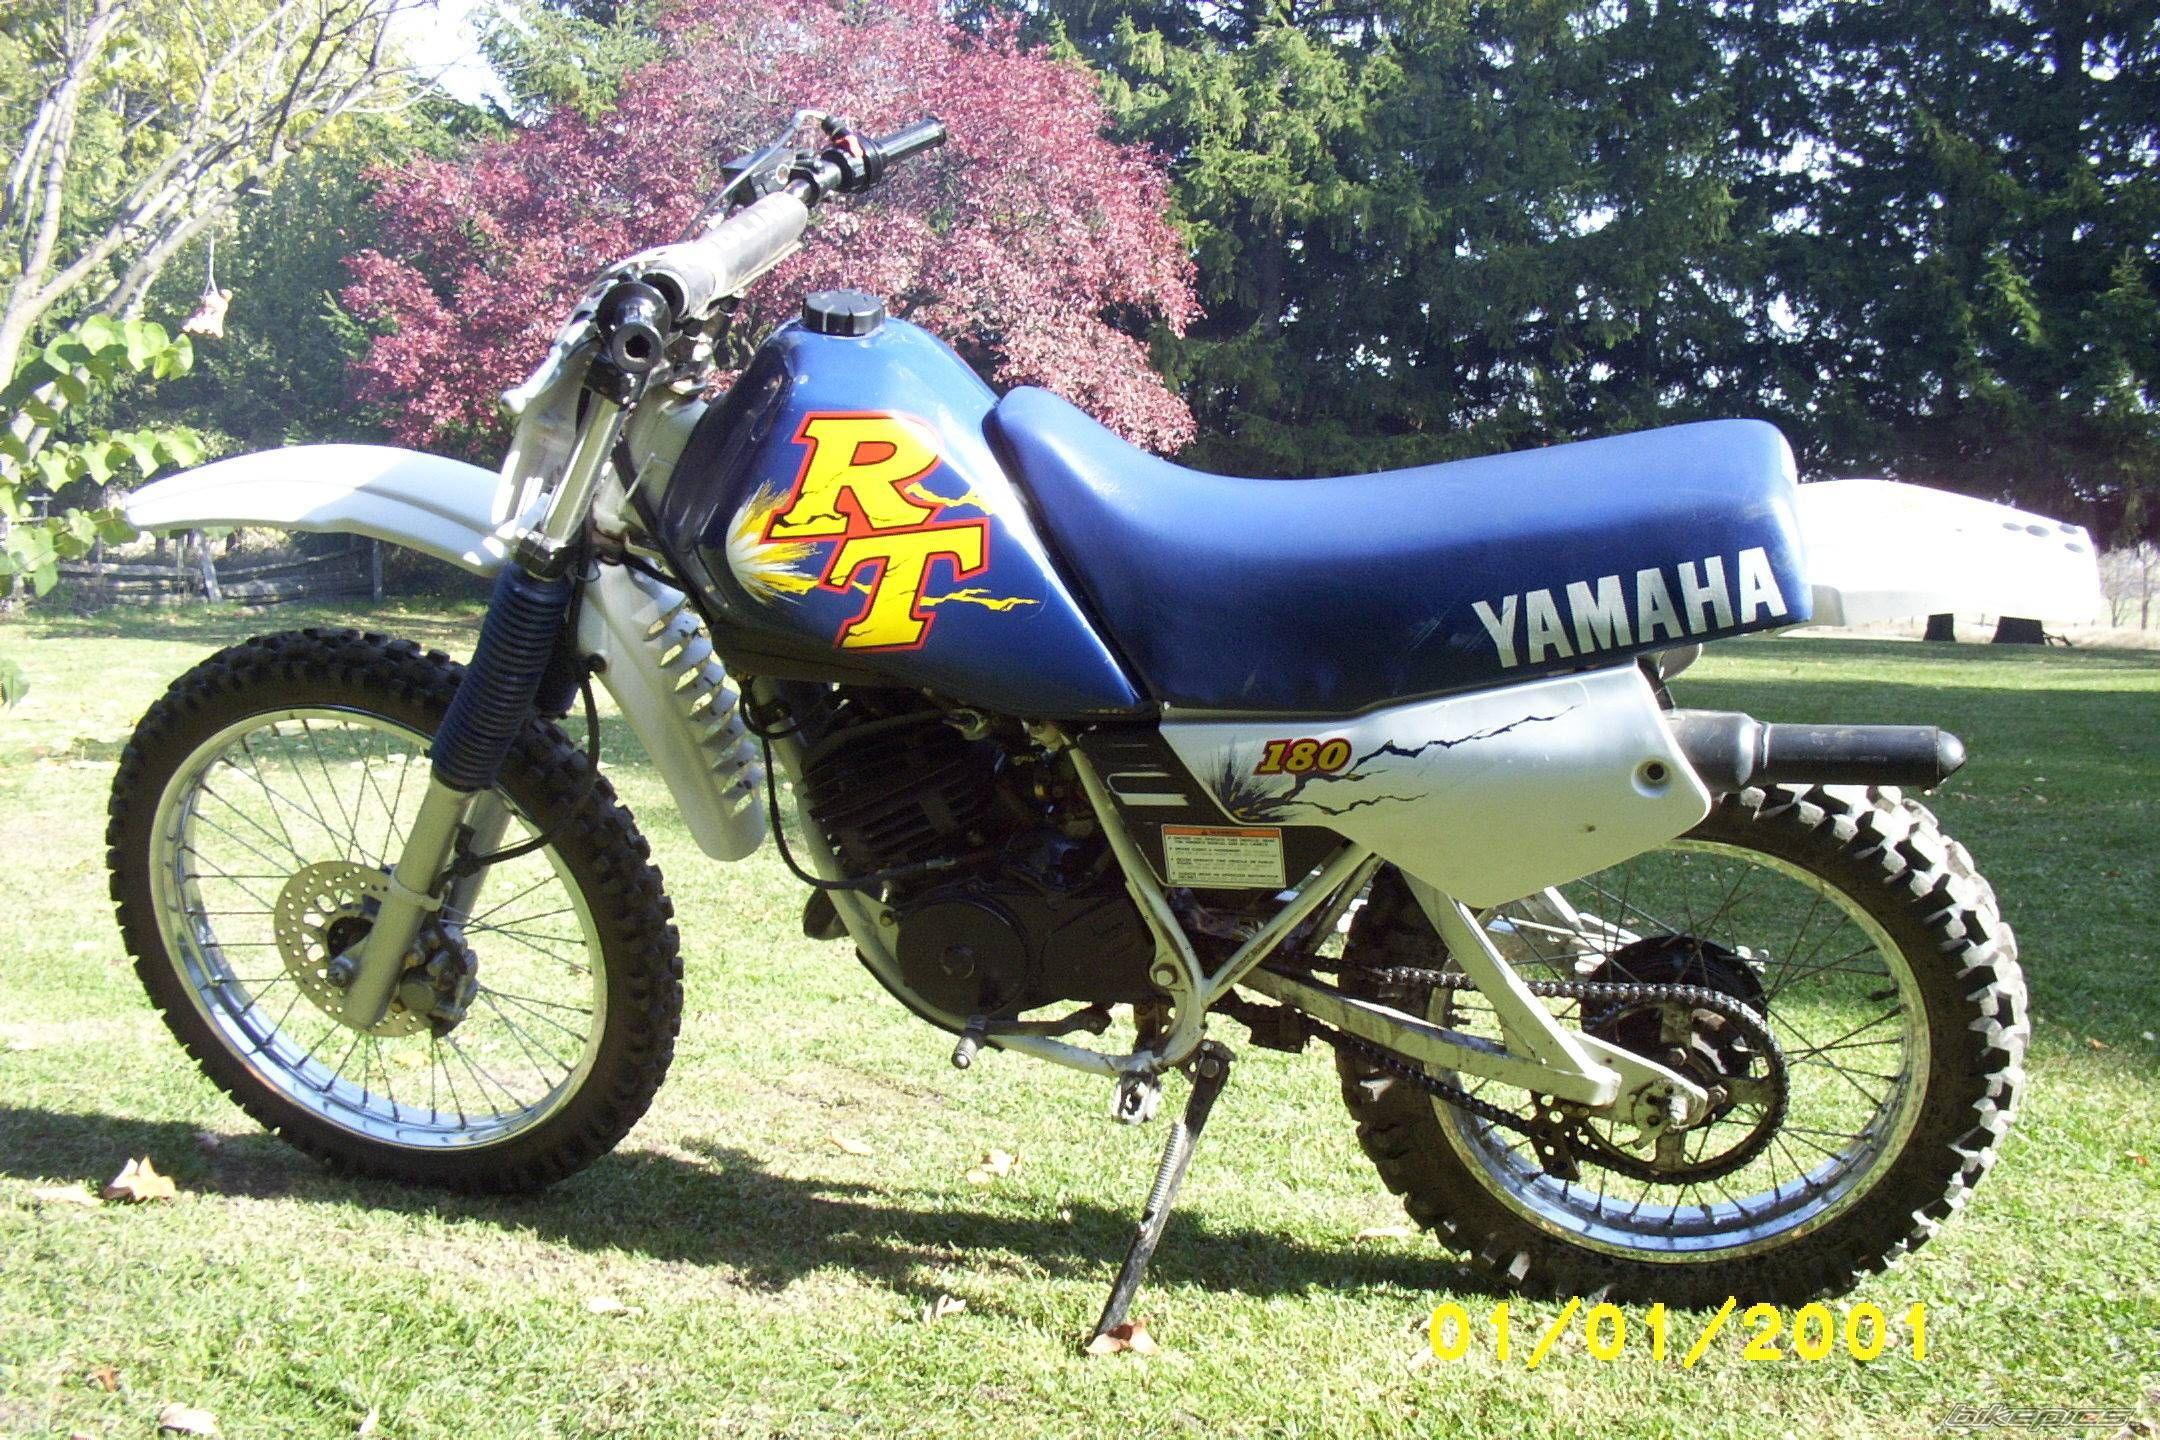 click on image to download 1996 yamaha rt180 service repair rh pinterest com 1998 Yamaha RT 180 1986 Yamaha RT 180